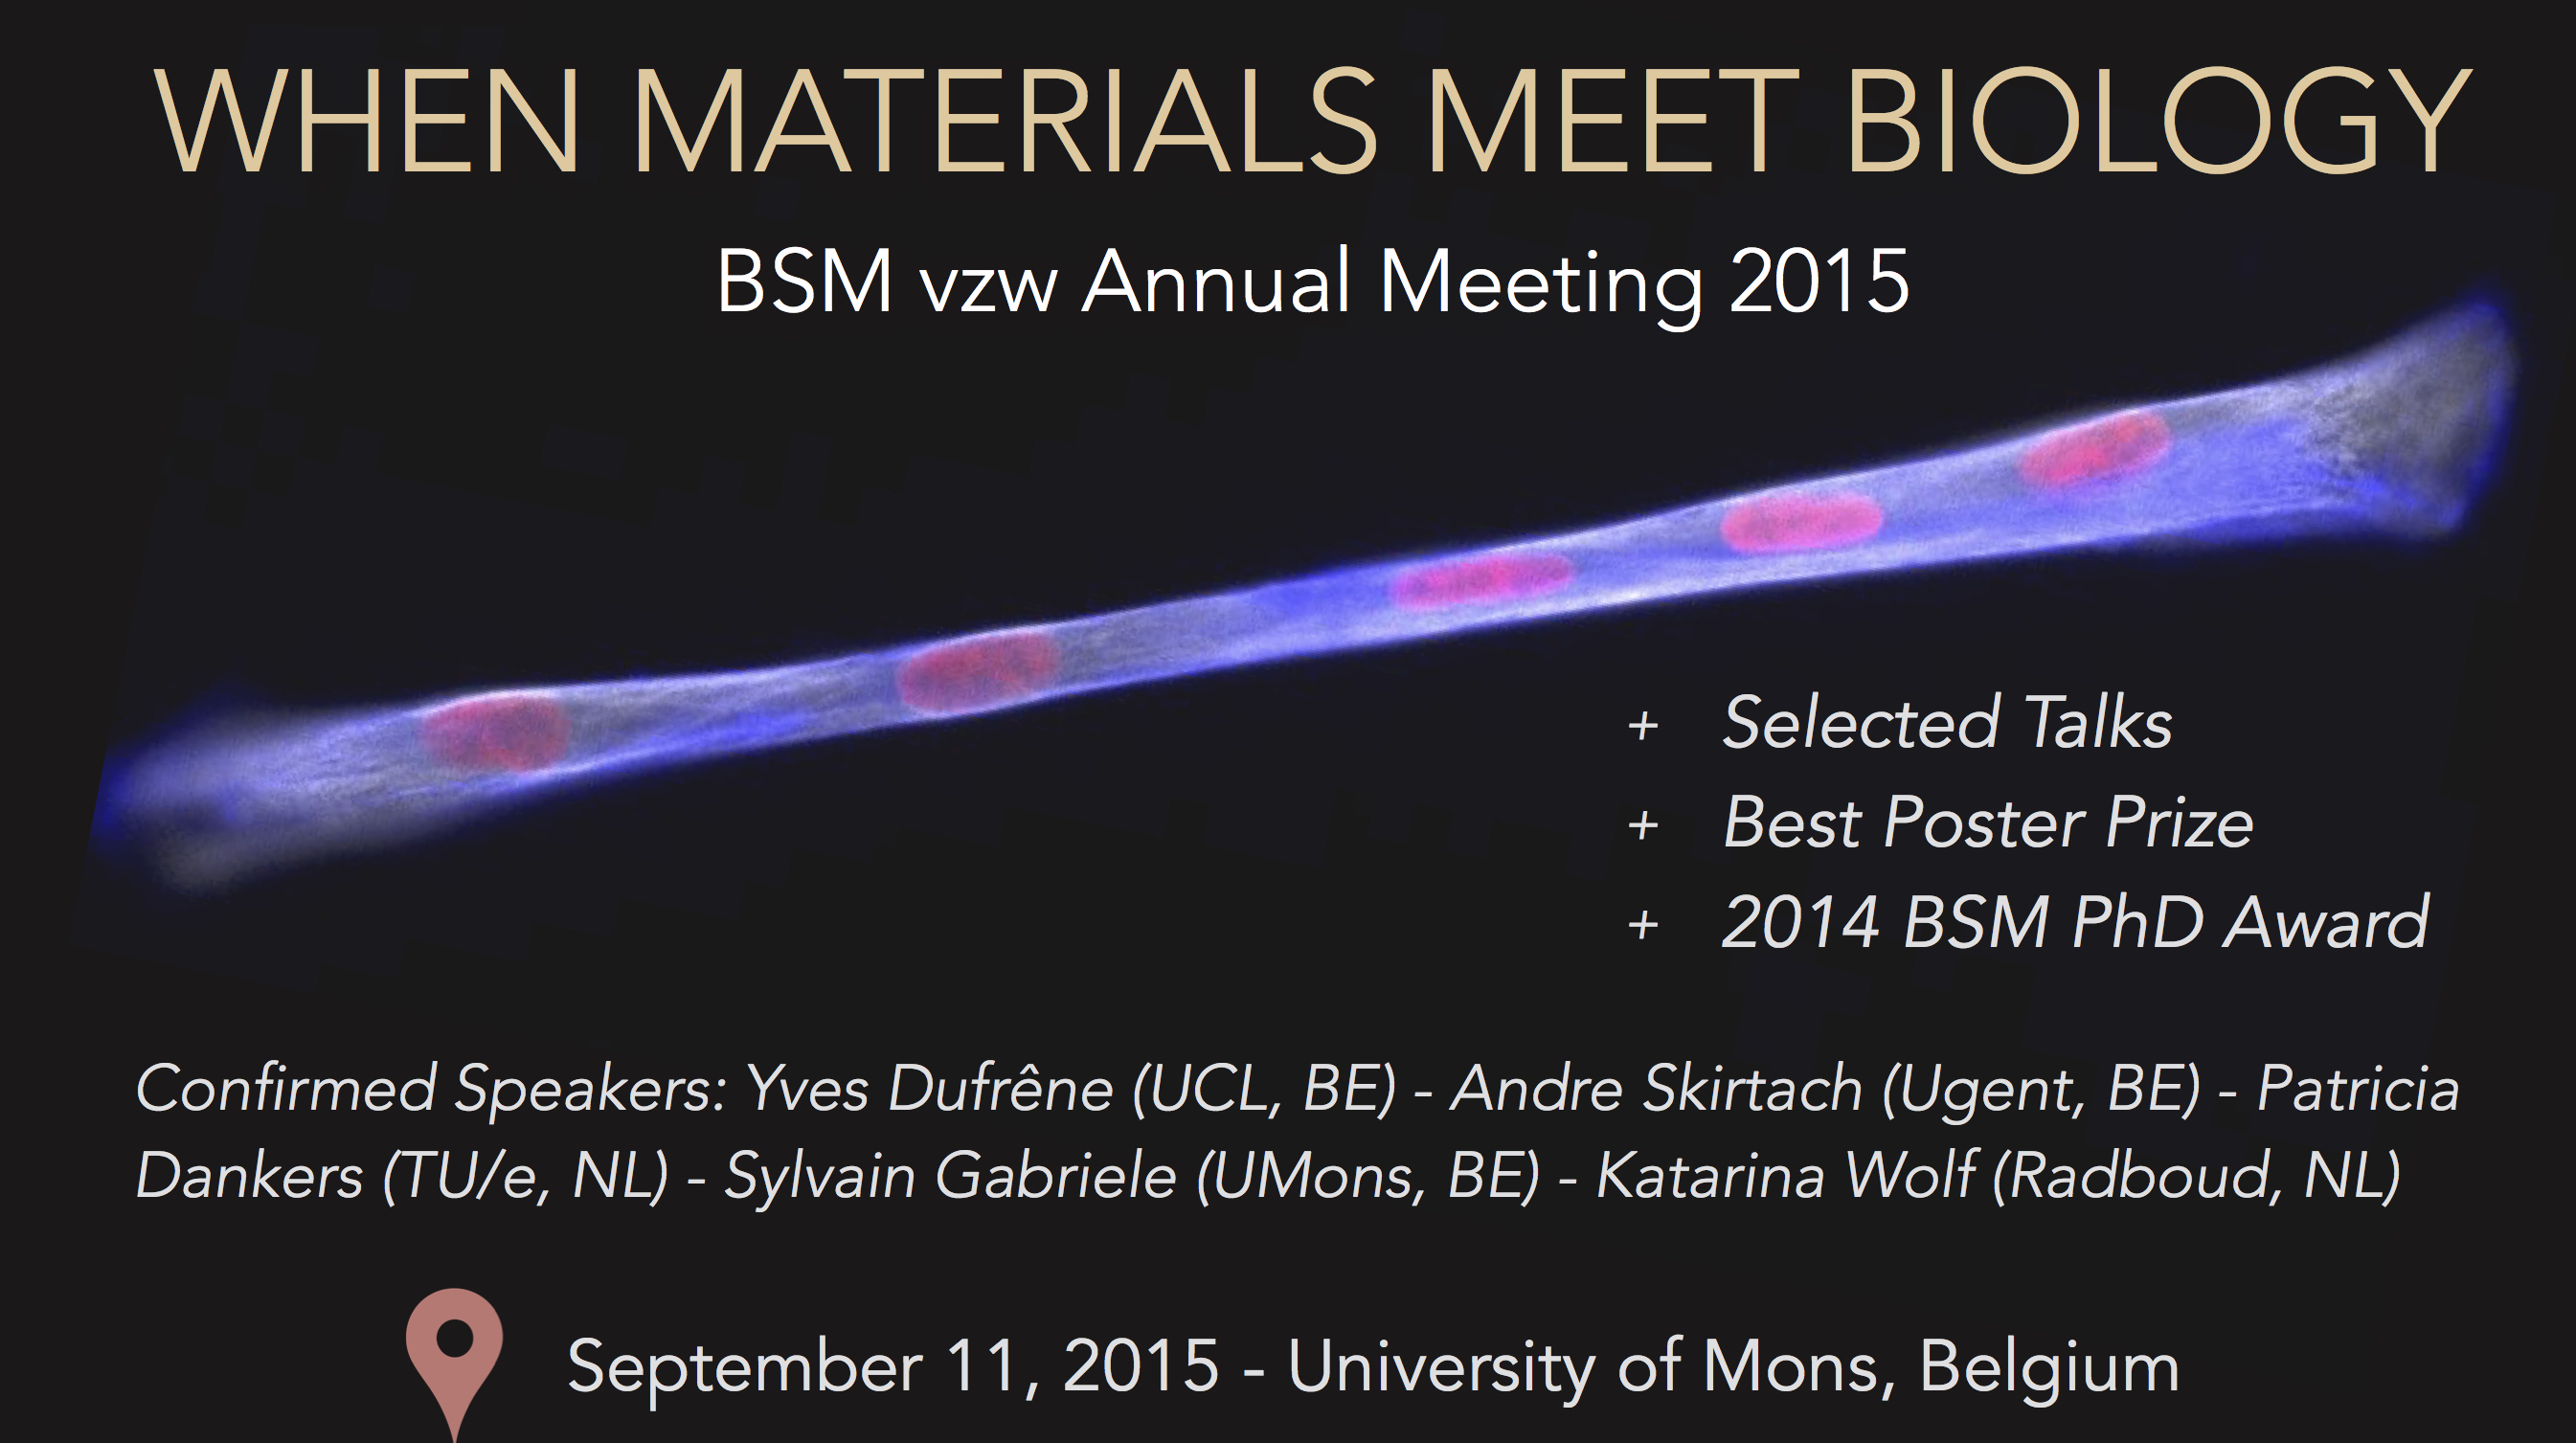 BSM Annual Meeting 2015